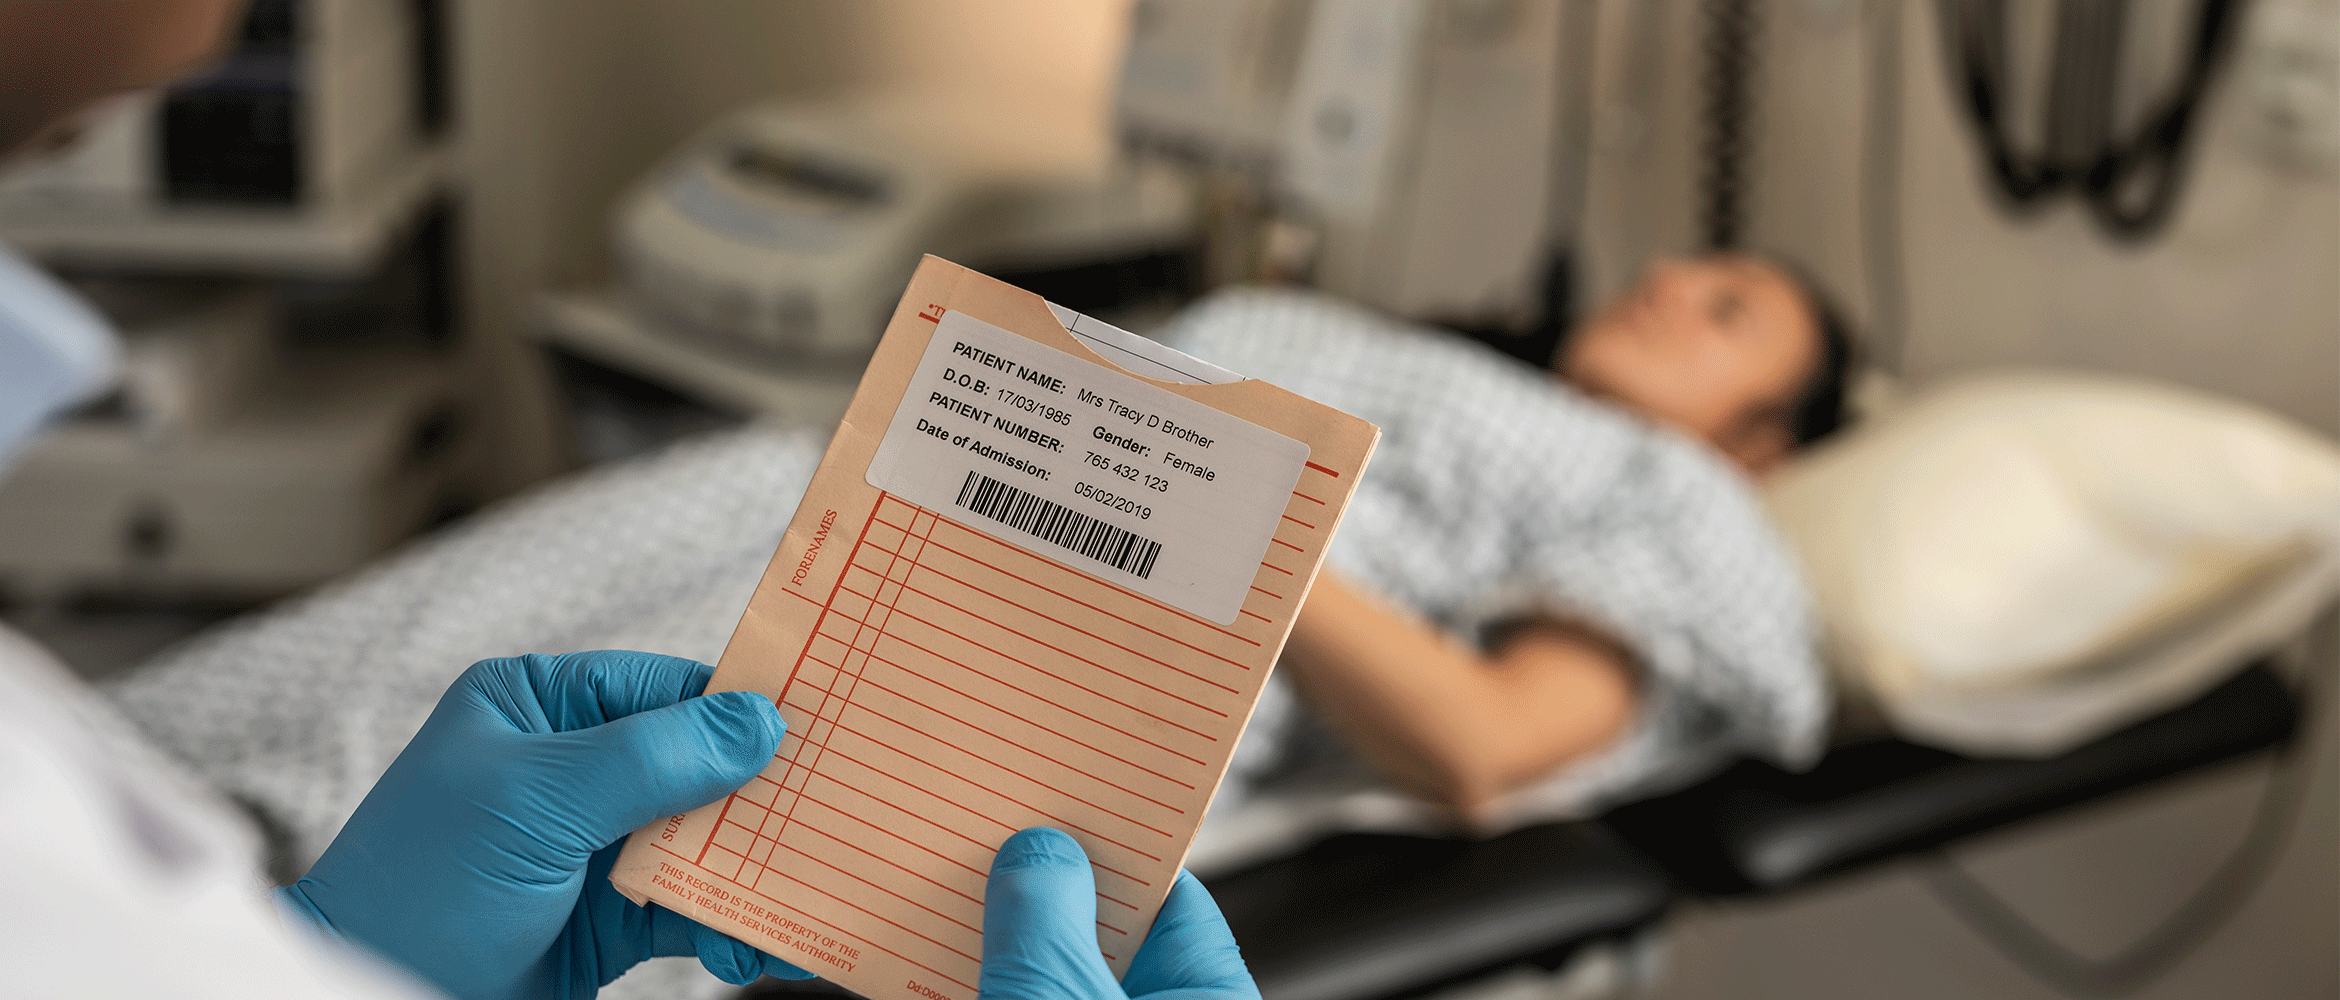 Lady on hospital bed with doctor checking files